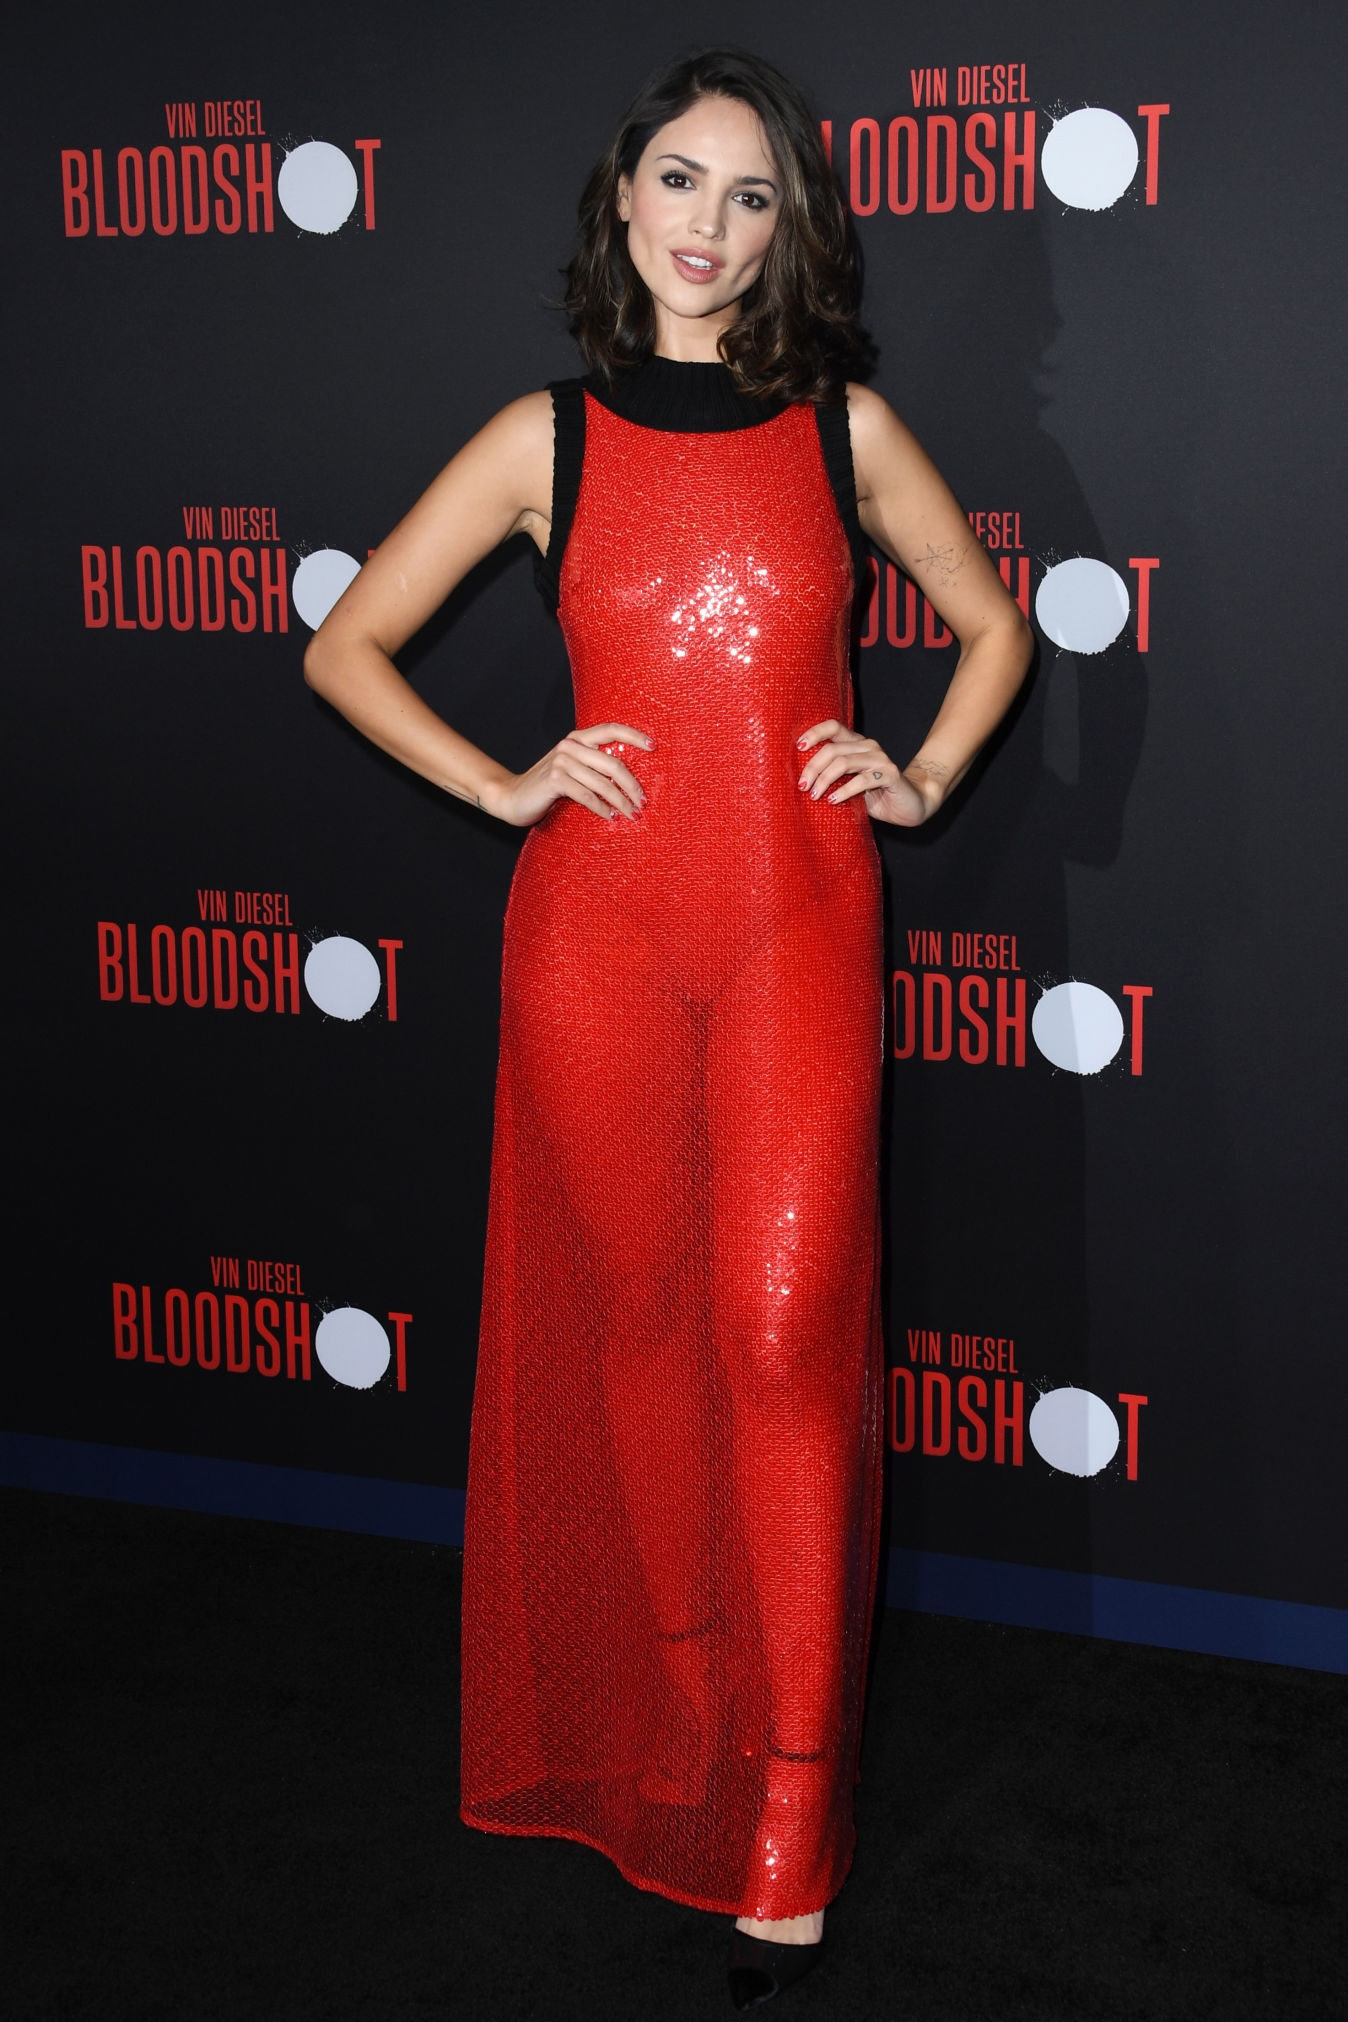 Eiza Gonzalez attends the Premiere of 'Bloodshot' at the Regency Village Theatre in Westwood, California